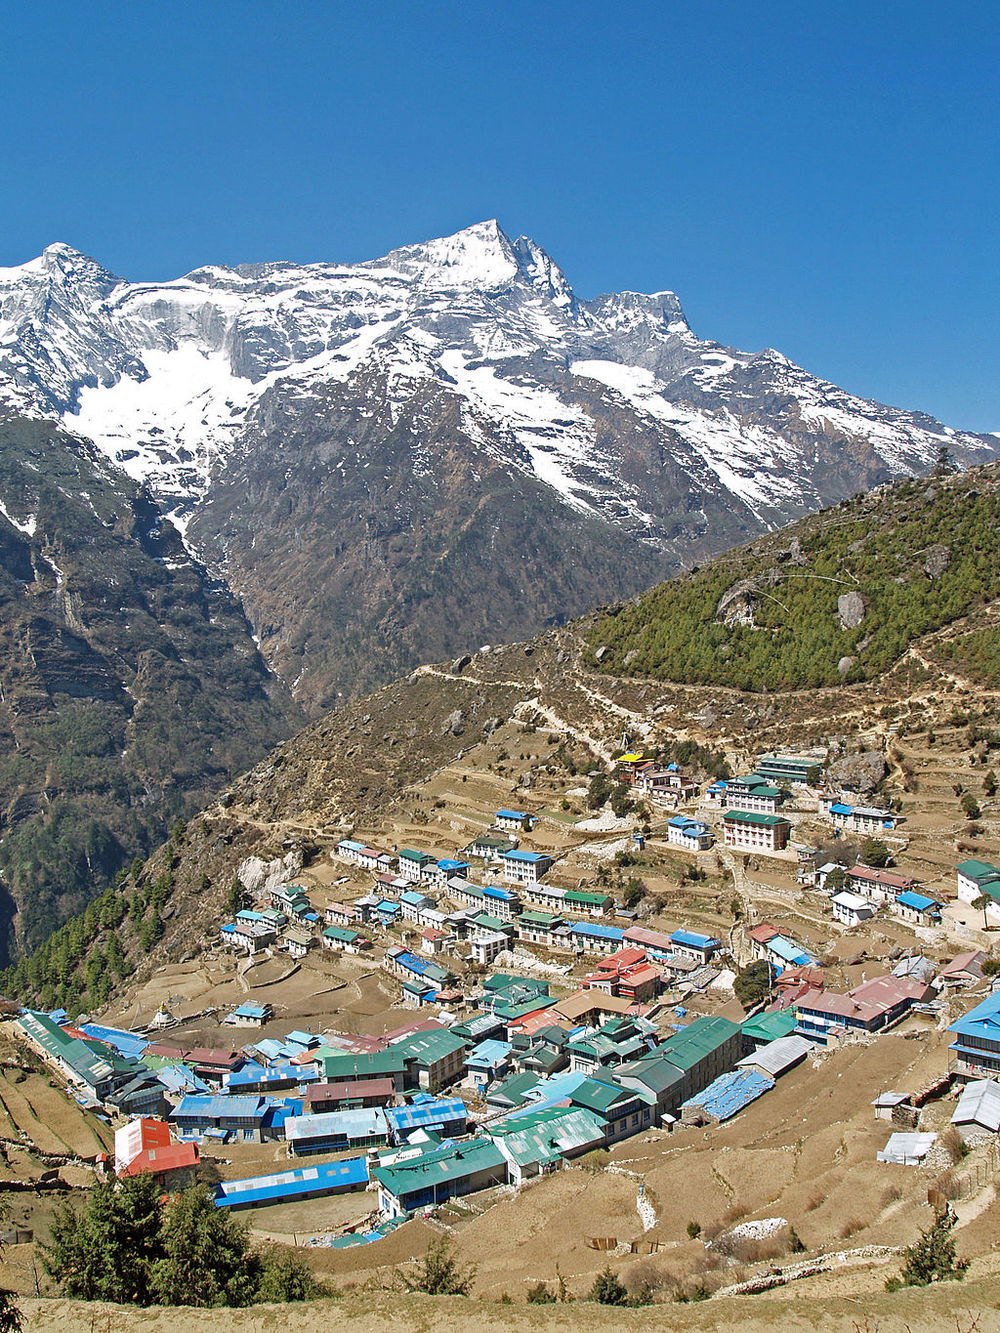 Namche Bazaar village located at 3,440 metres (11,286 ft) above the sea level in Khumbu region, northeastern Nepal. The Kongde Ri peakb with its 6,187 m (20,299 ft) can be seen in the background. Photo by stevehicks [CC-BY-2.0 (http://creativecommons.org/licenses/by/2.0)], via Wikimedia Commons